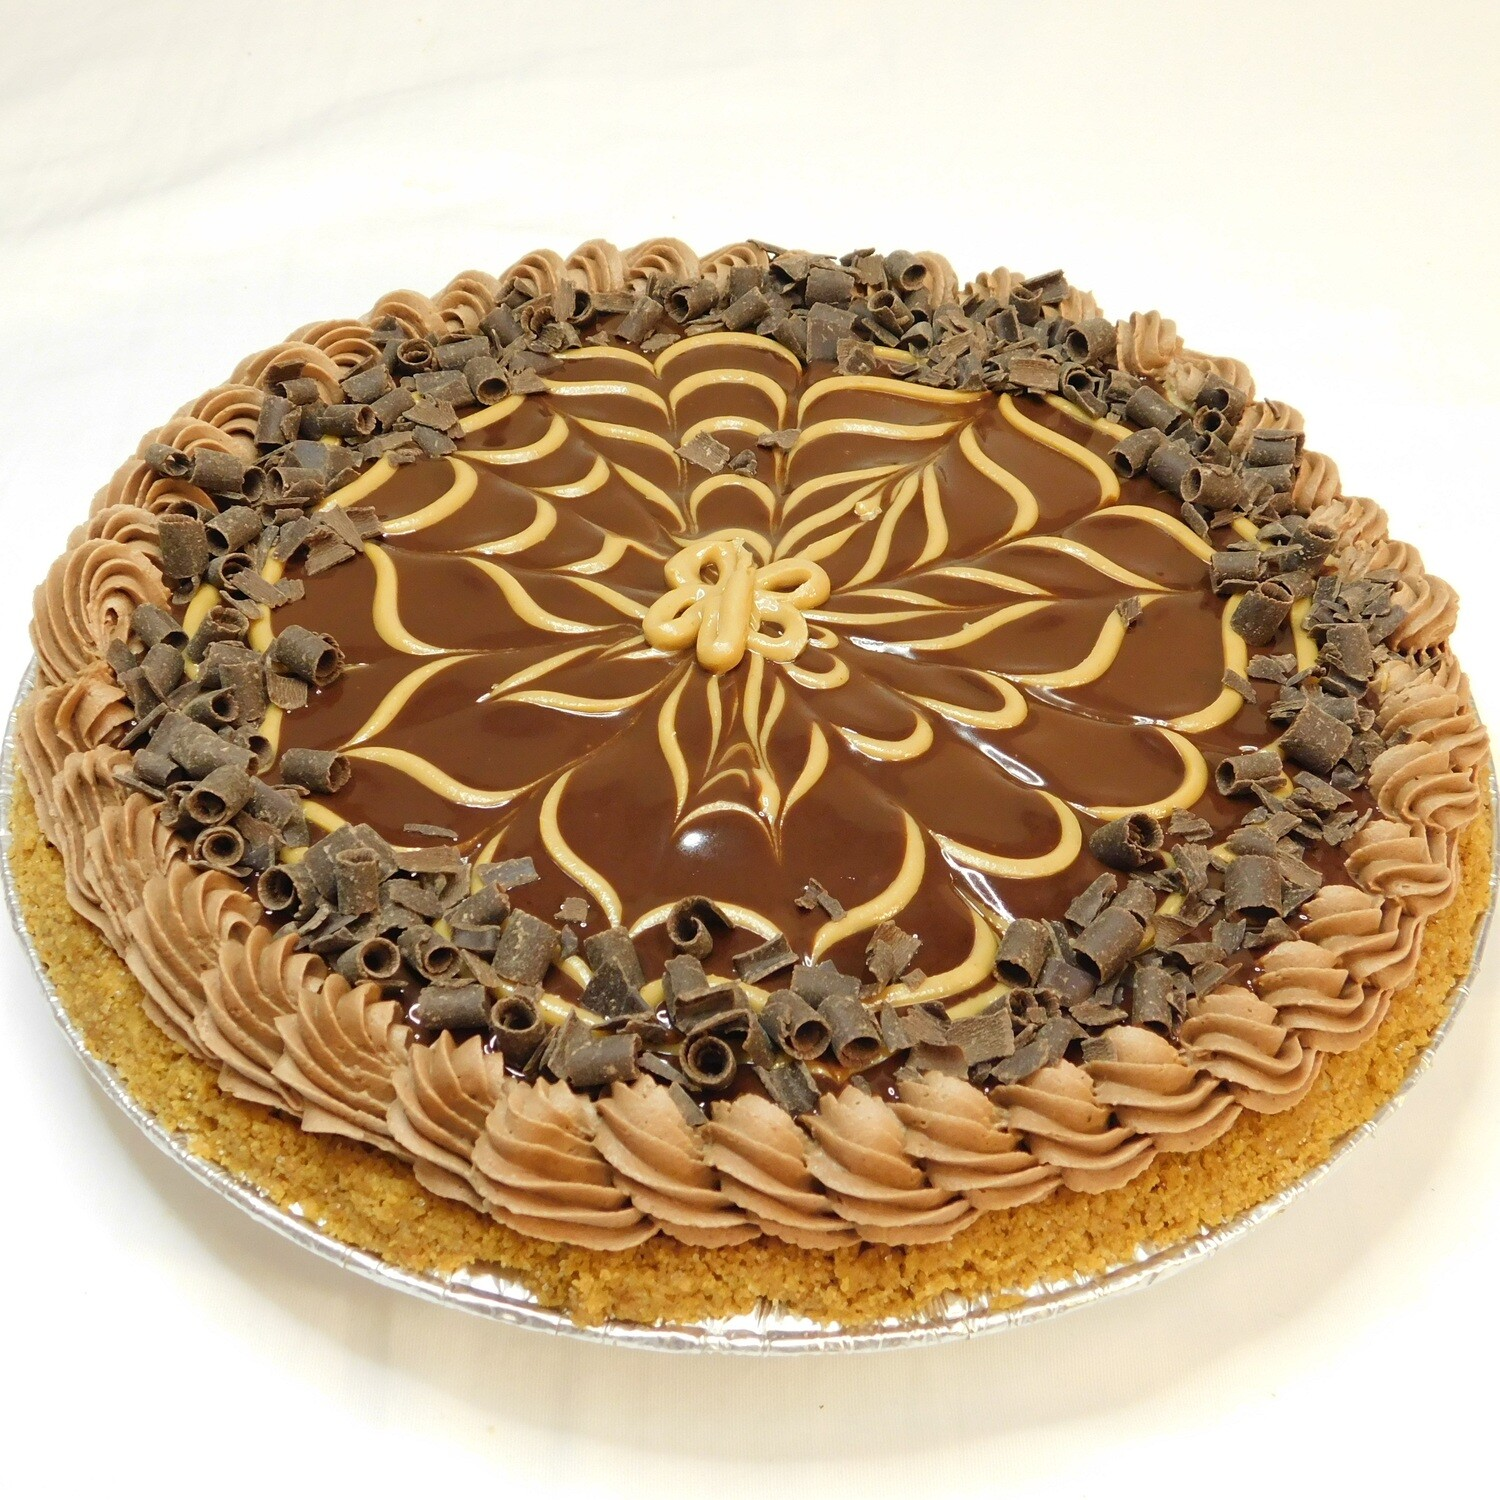 Chocolate Peanut Butter Ganache Pie